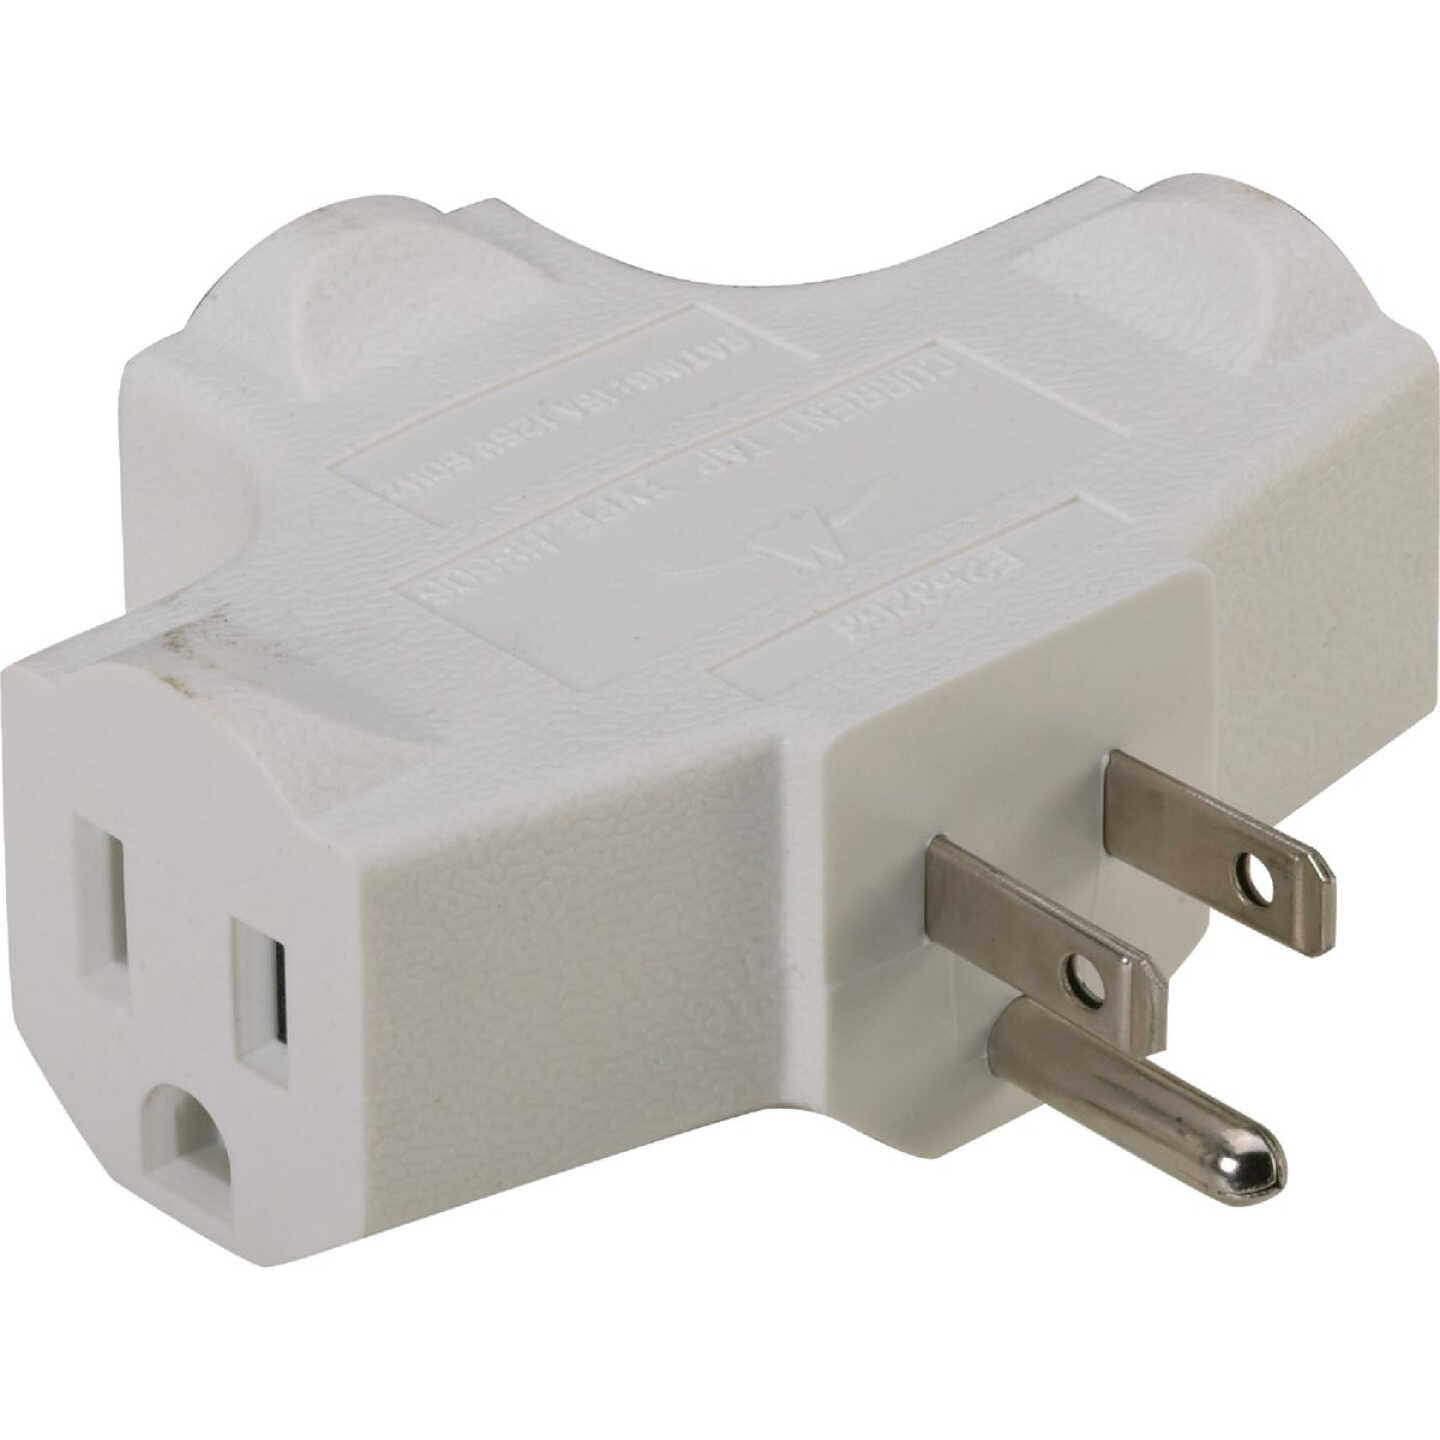 Do it White 15A 3-Outlet Tap Image 1